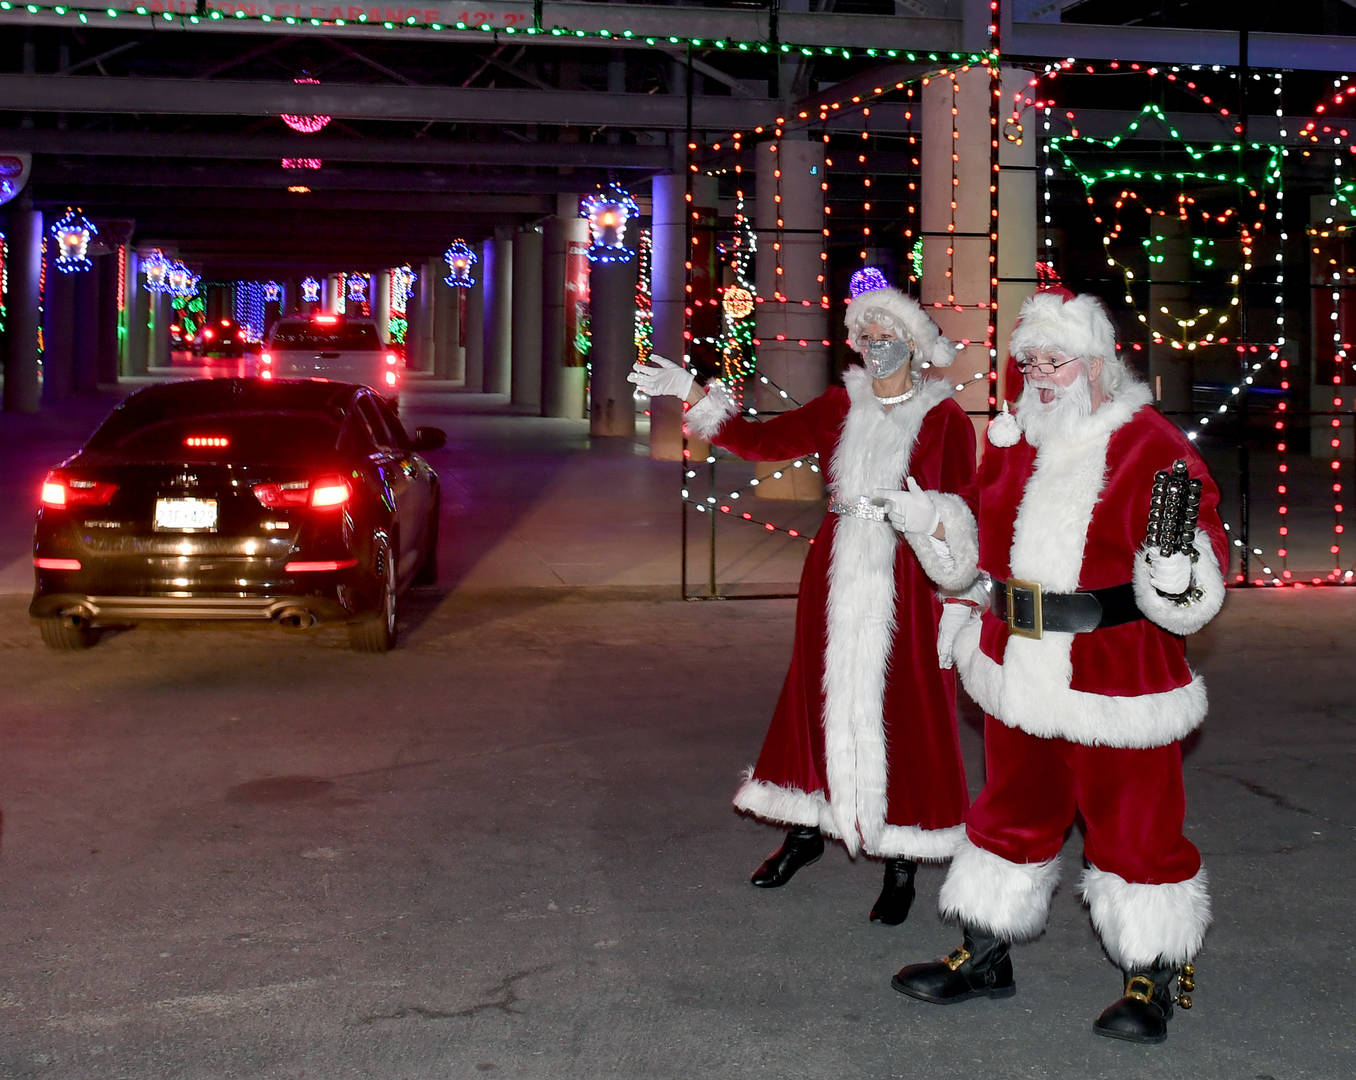 Governor Whitmer calls on Santa Claus for message about Christmas